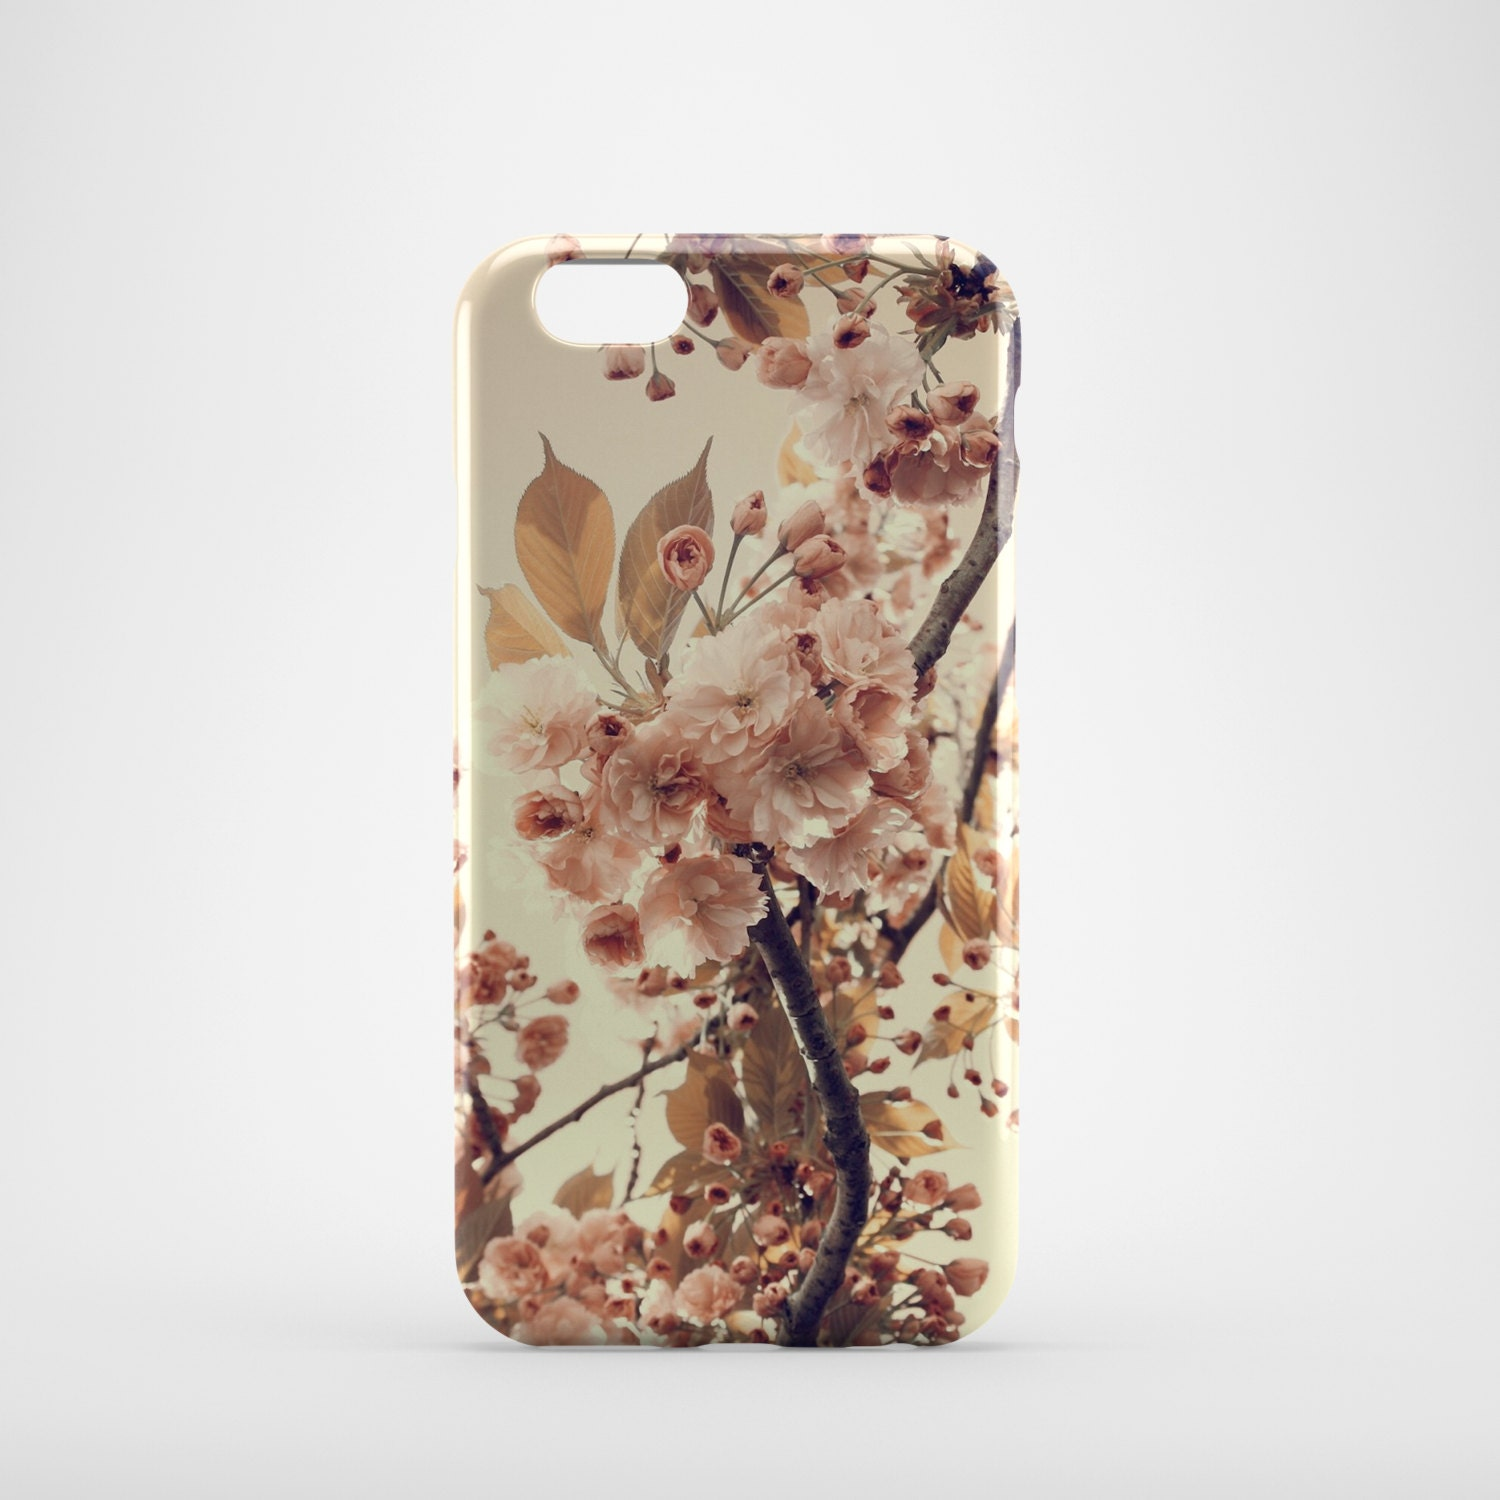 Vintage Floral iPhone Case iPhone 6 Case iPhone 6s Case iPhone 6 Plus Case iPhone 5C Case iPhone 5 Case iPhone 4 Case SS154a